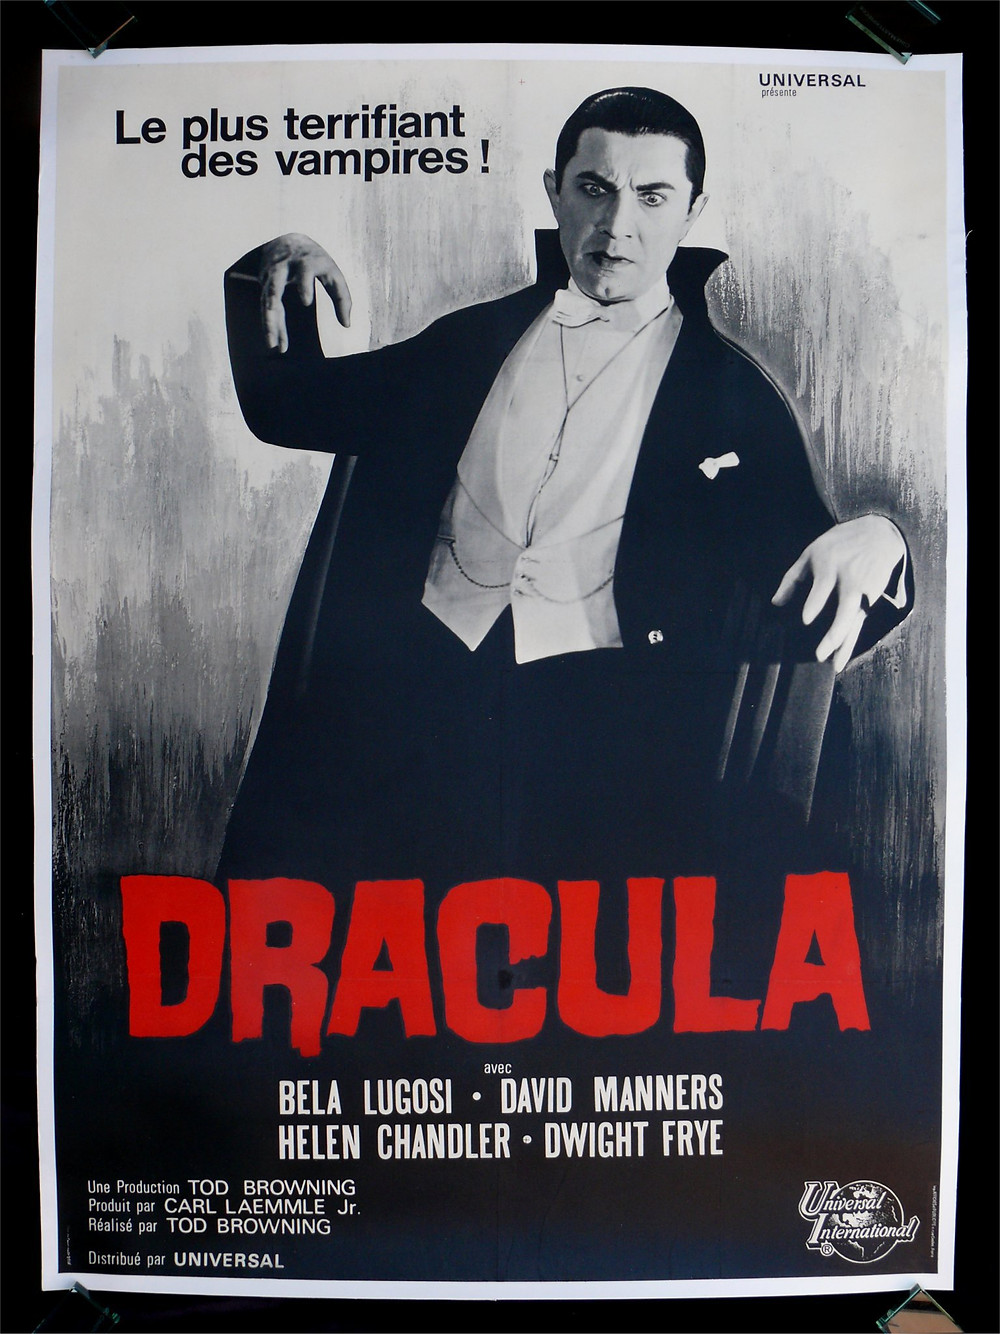 French movie poster for Dracula (1931), directed by Tod Browning